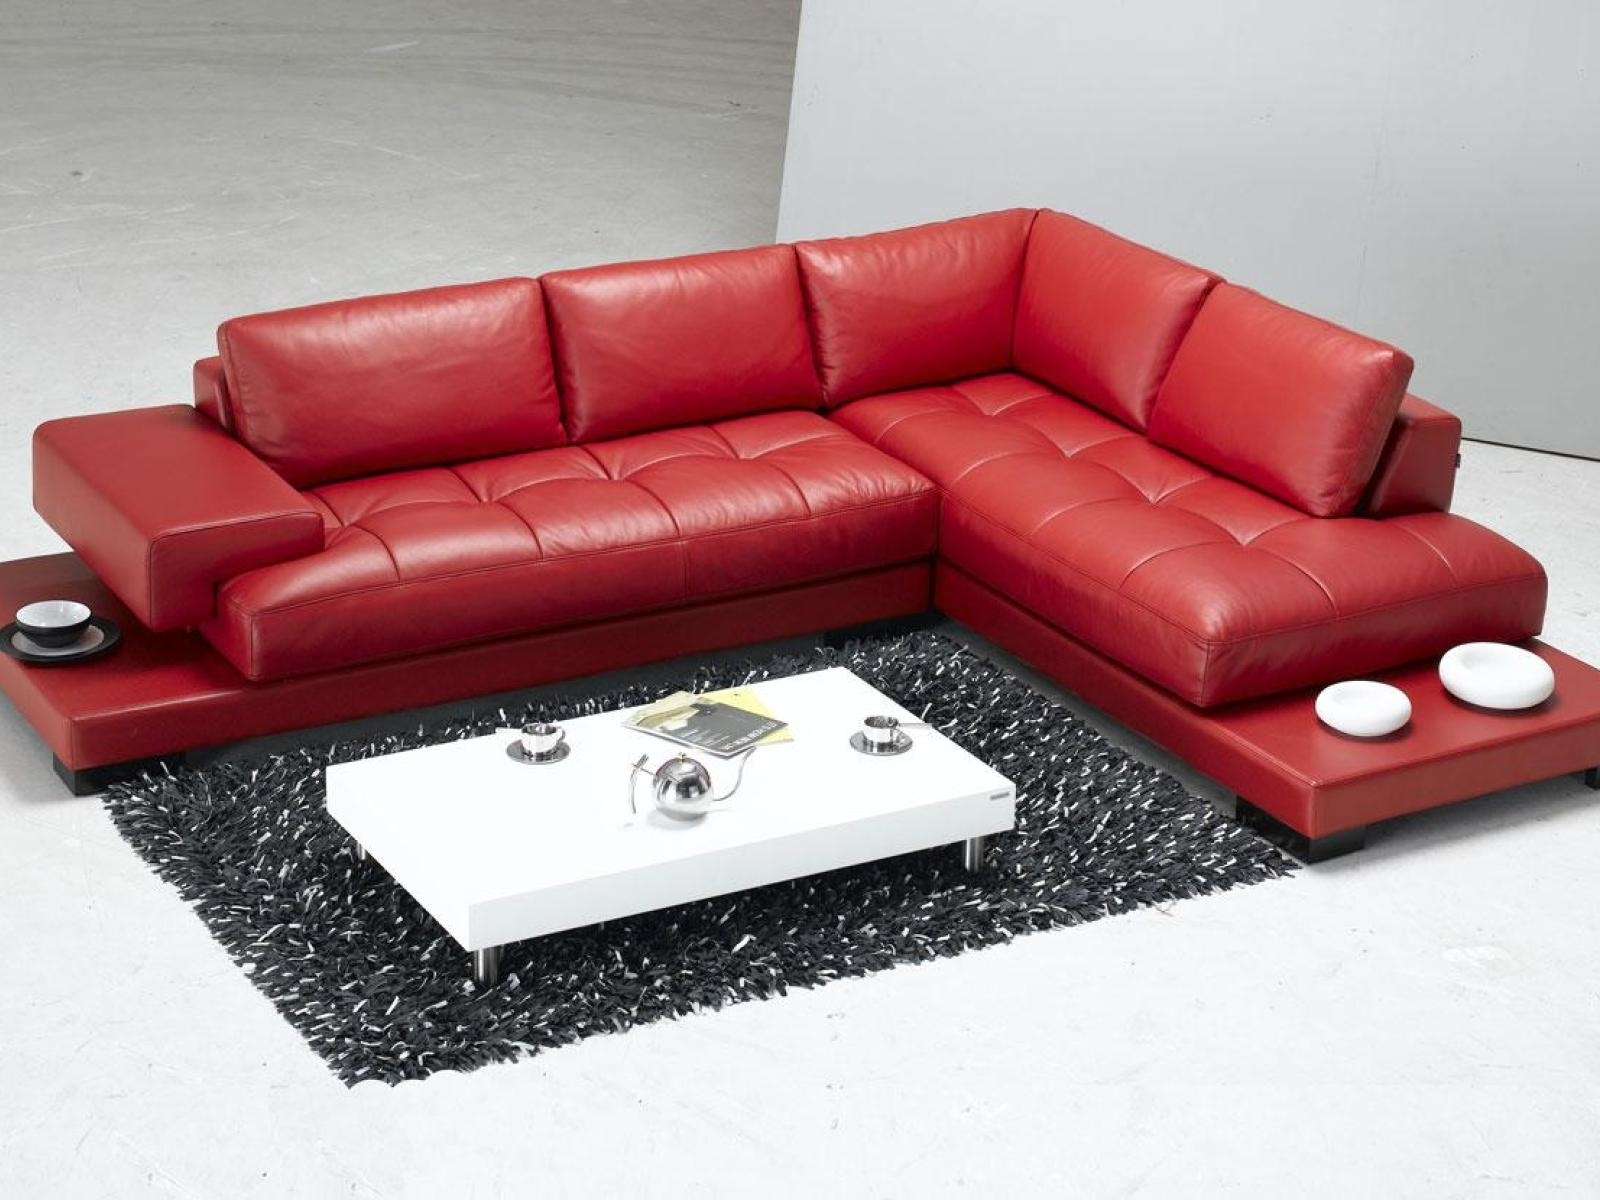 Sofa Red Leather Sectional Pink With Couches Faux Furniture Sale In Red Faux Leather Sectionals (View 7 of 10)